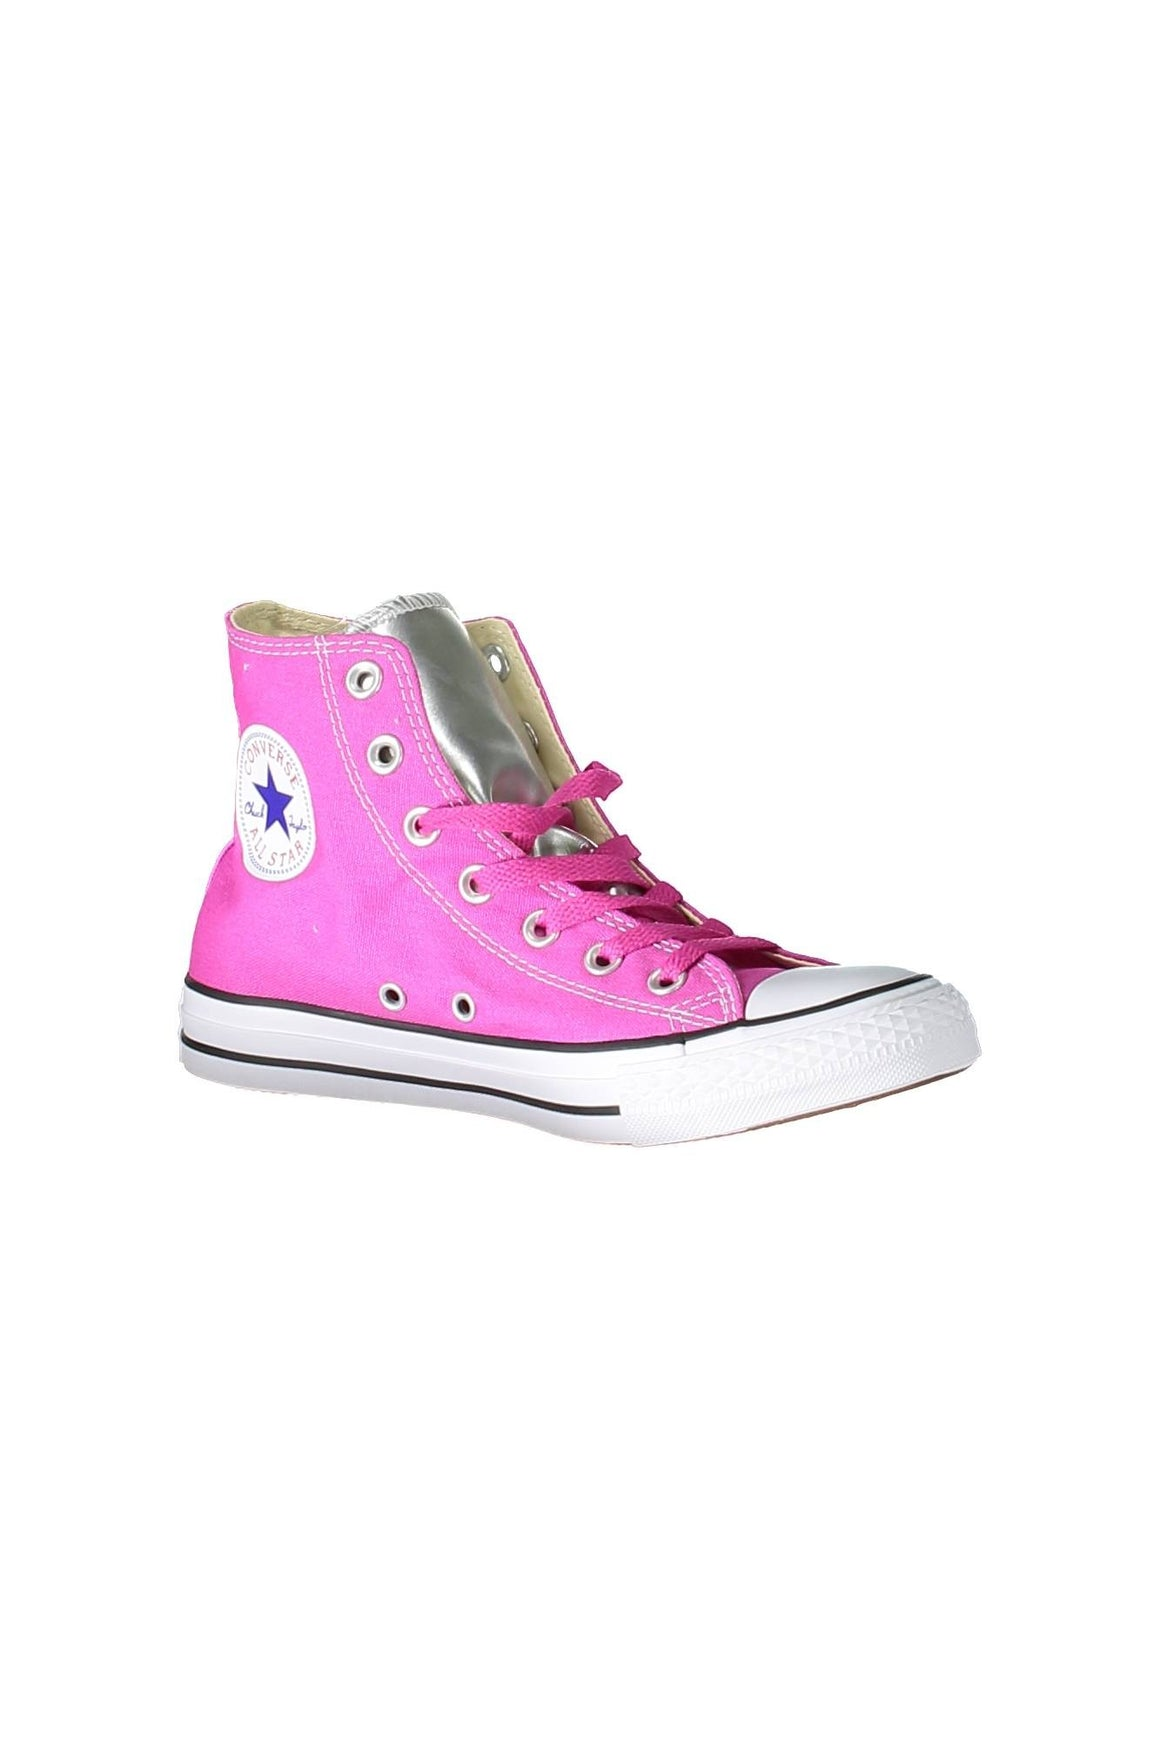 converse BO-552760C_PLASTIC_PINK shoes